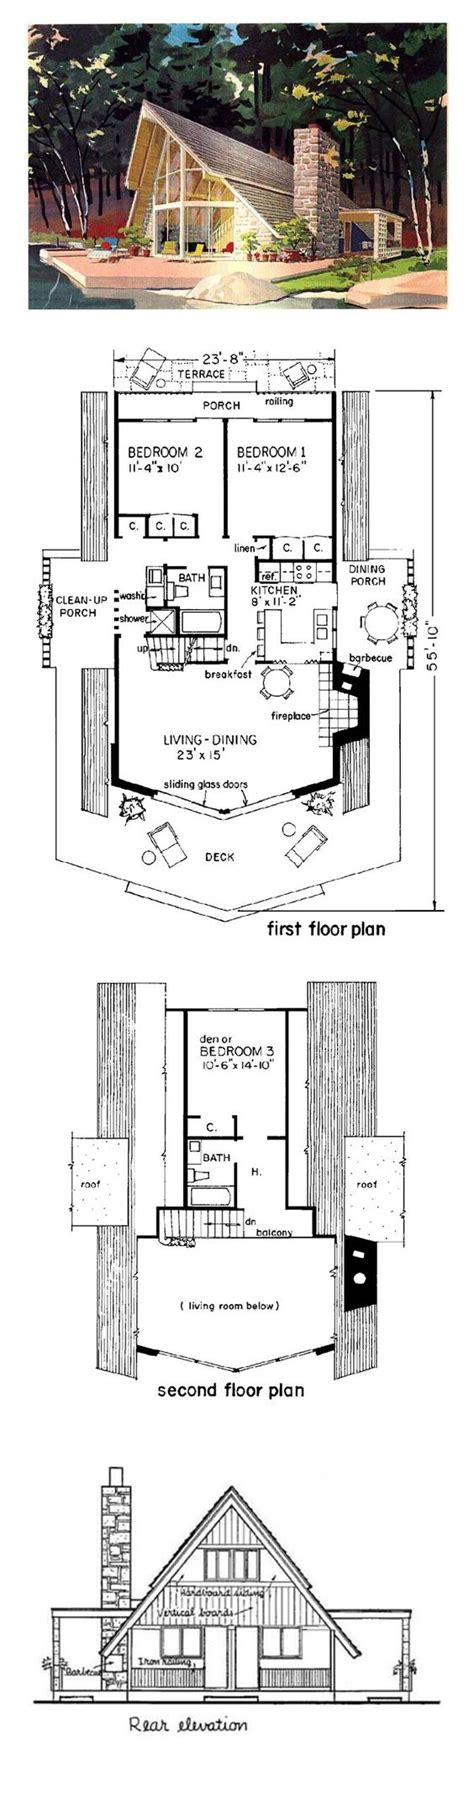 2 bedroom timber frame house plans 2 bedroom bath a frame house plans escortsea timber 3